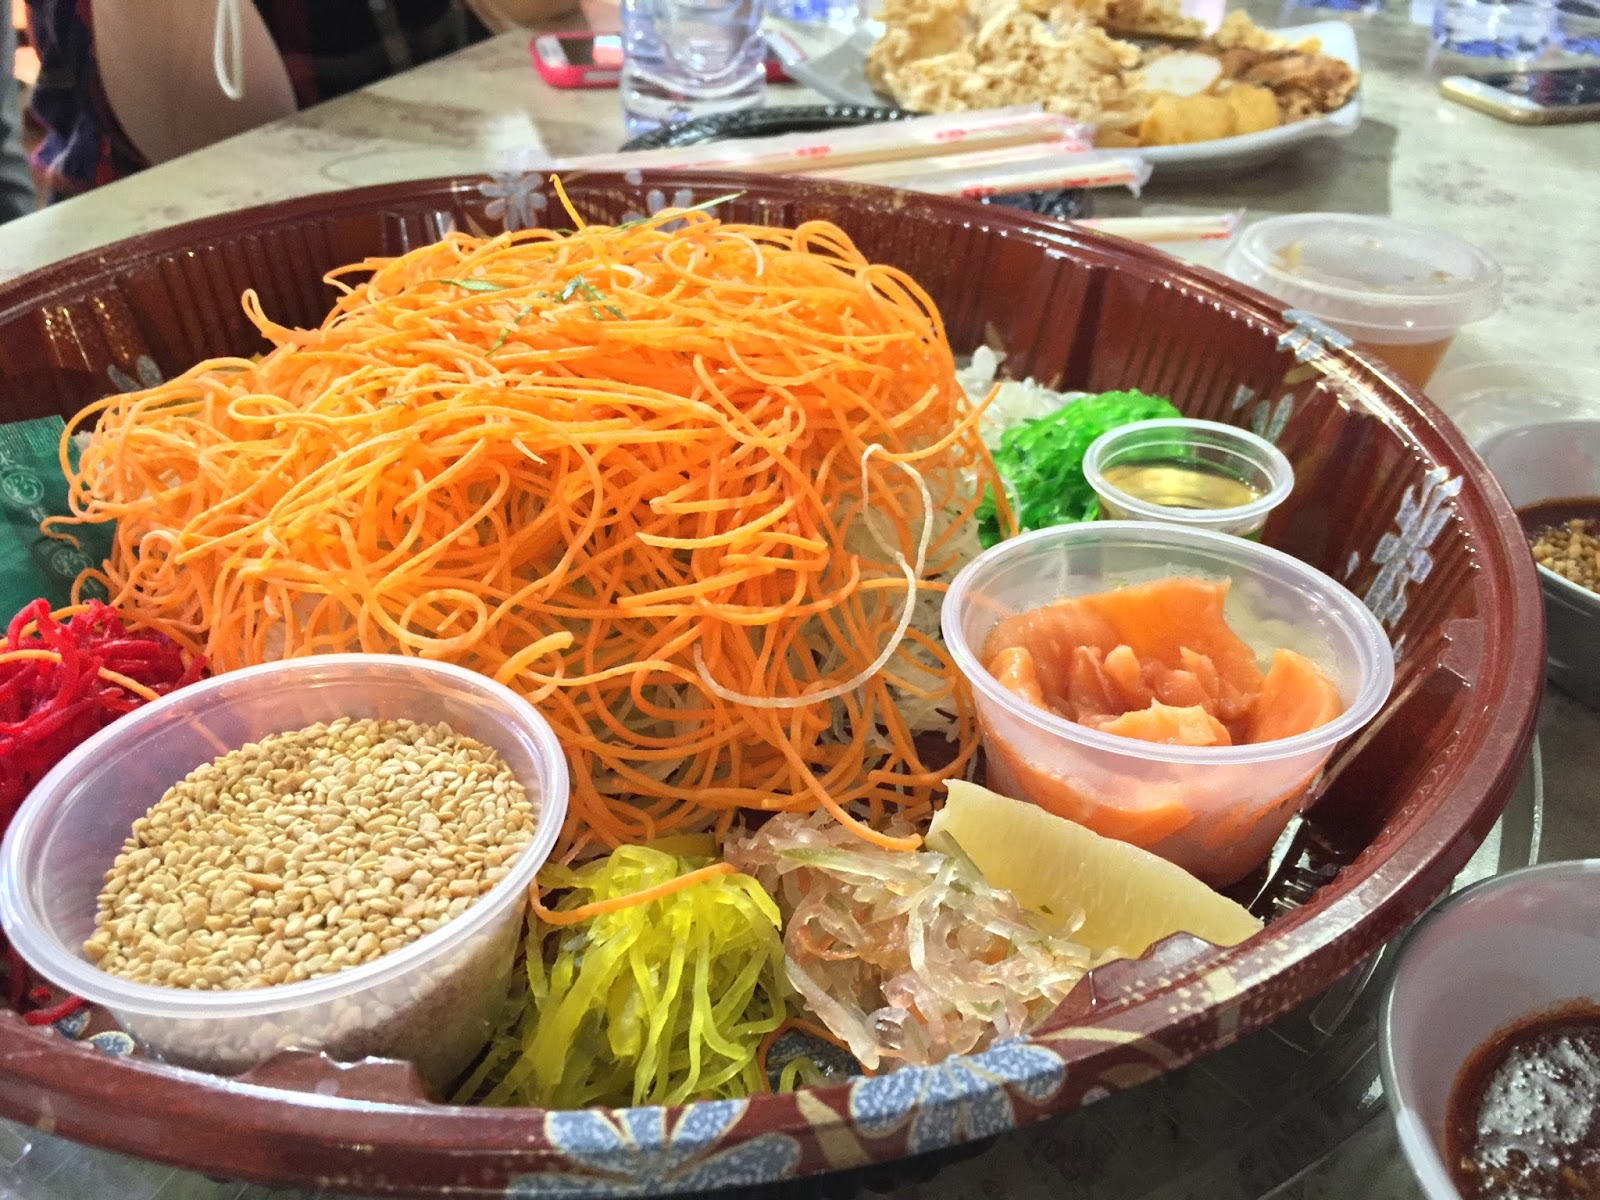 Yu Sheng at Chinatown Food Street